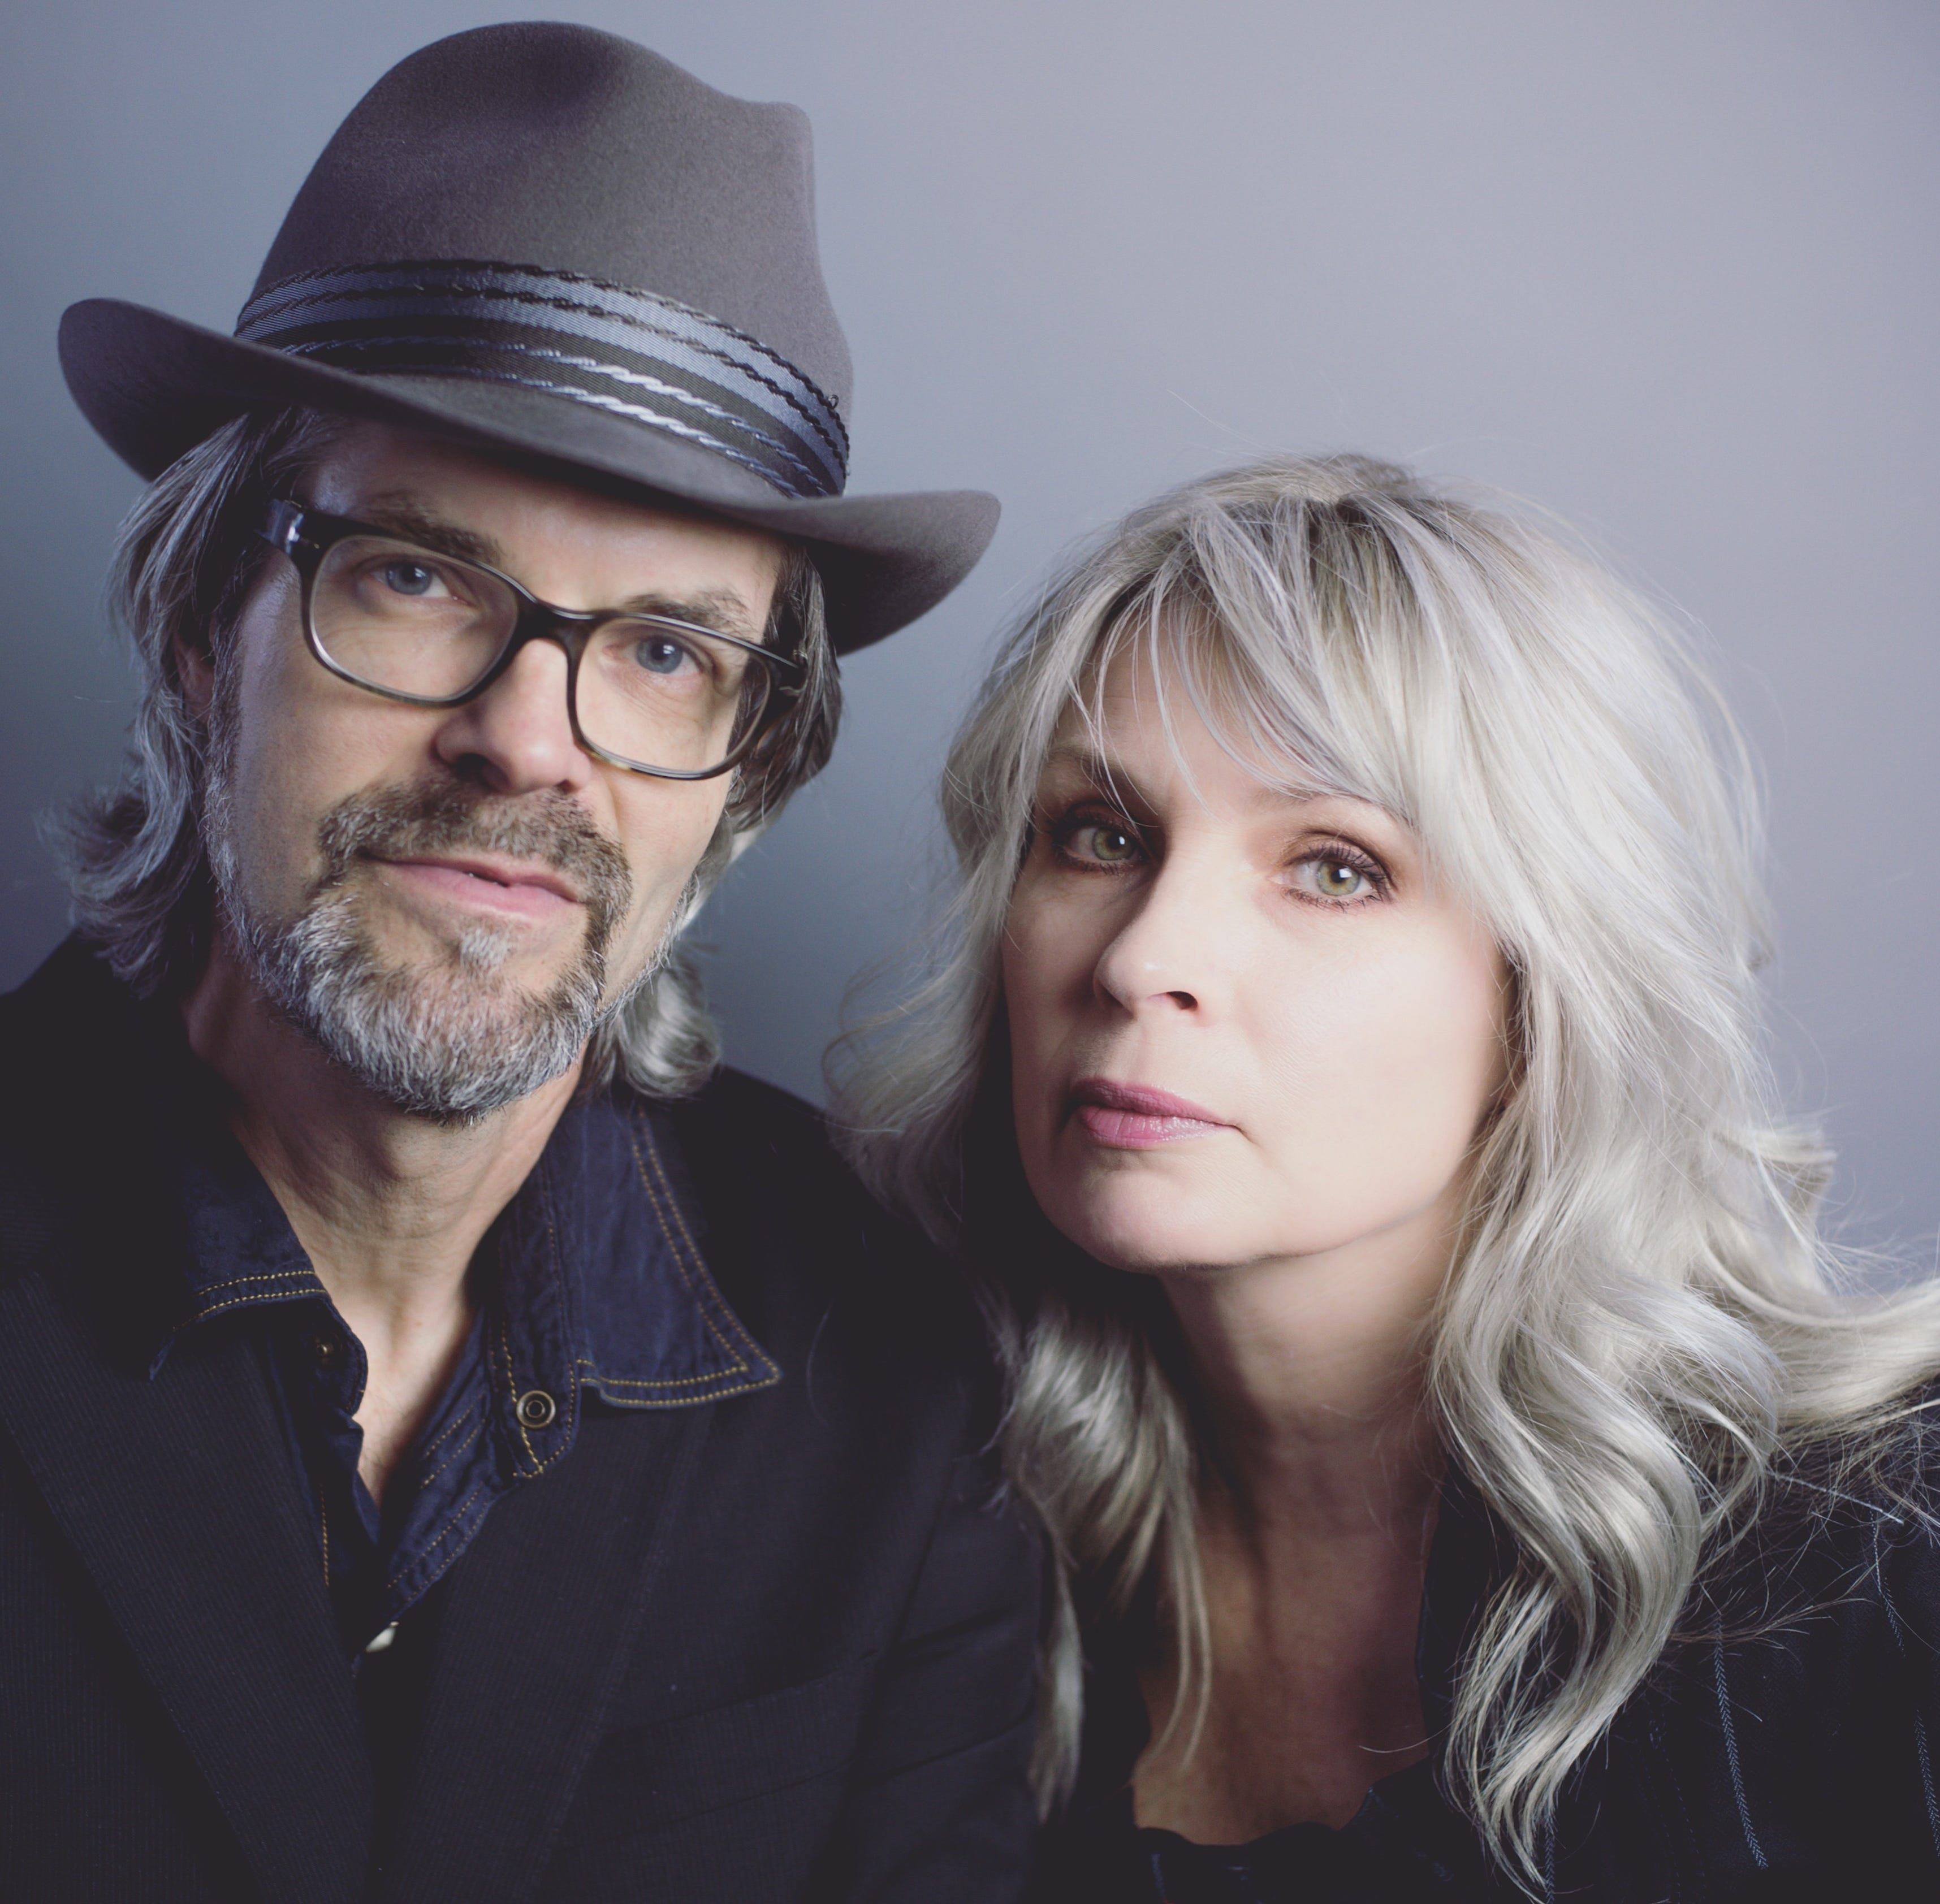 After lengthy 'rest,' Over the Rhine duo releases new album